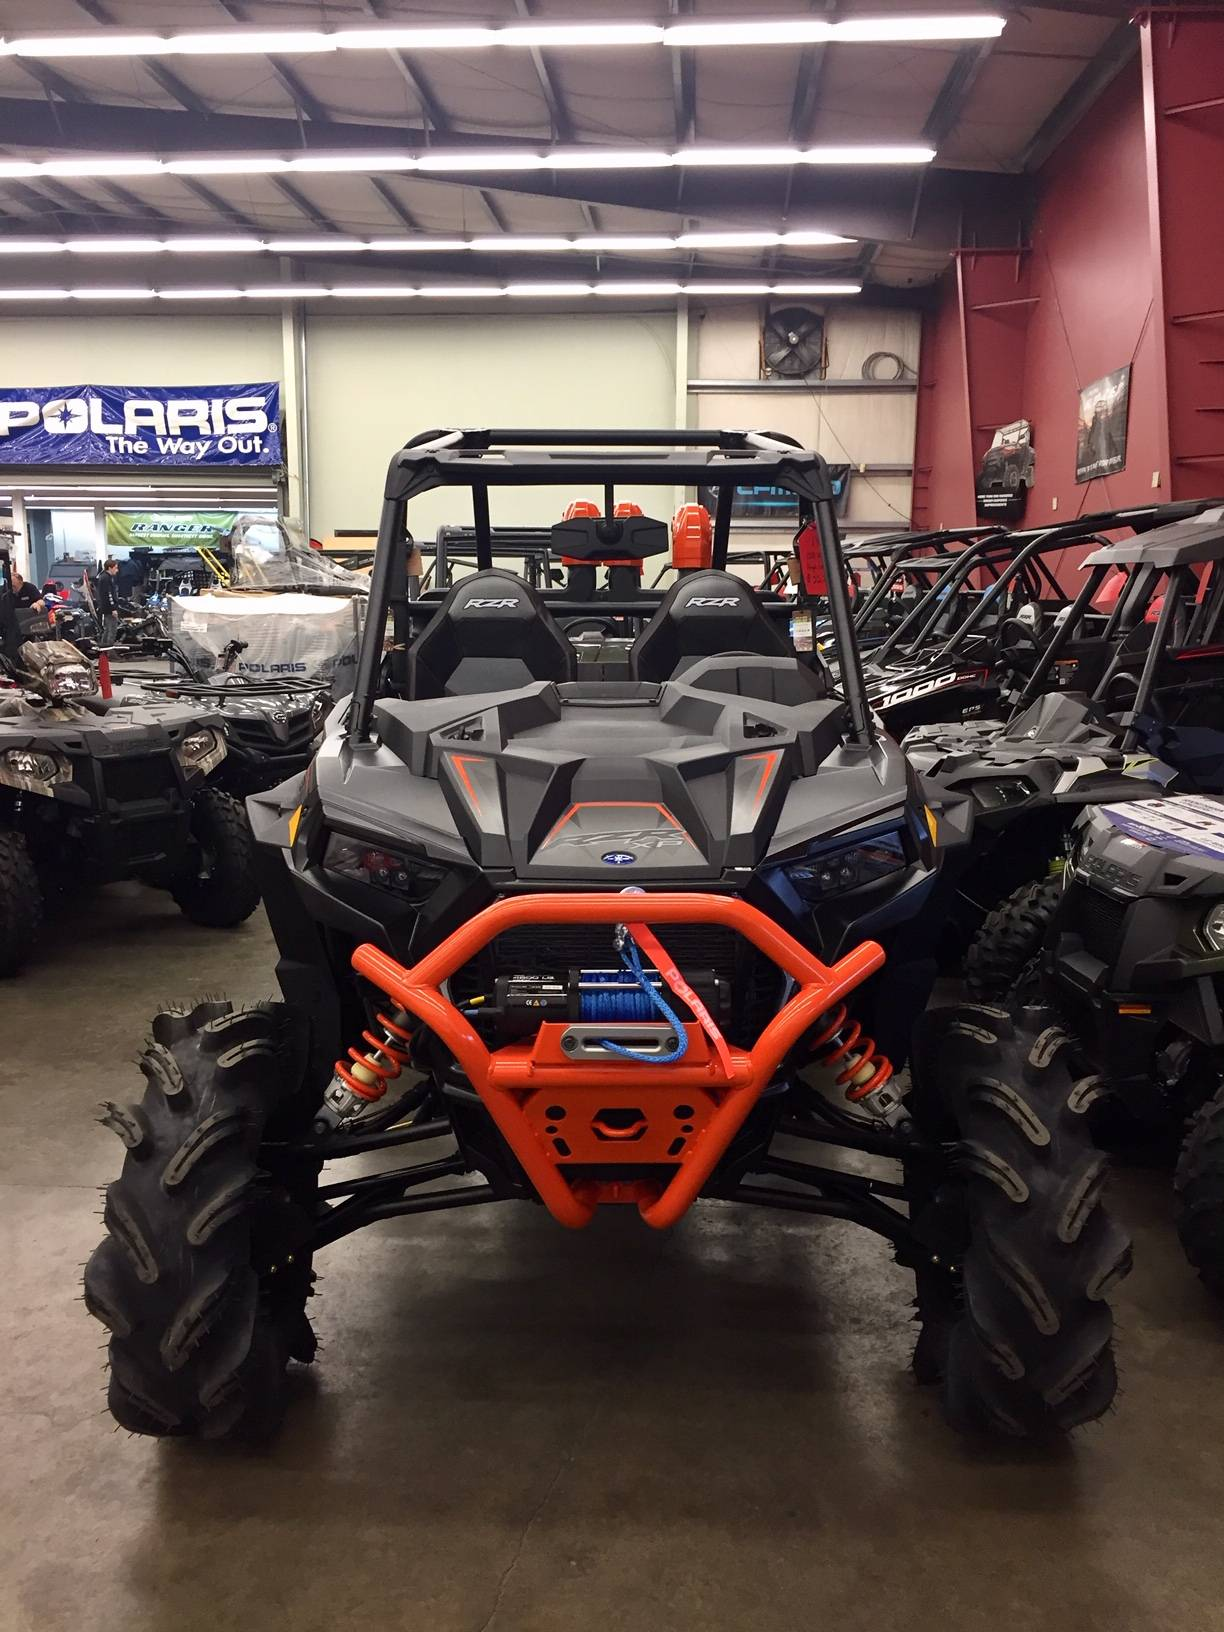 2019 Polaris RZR XP 1000 High Lifter in Monroe, Washington - Photo 3